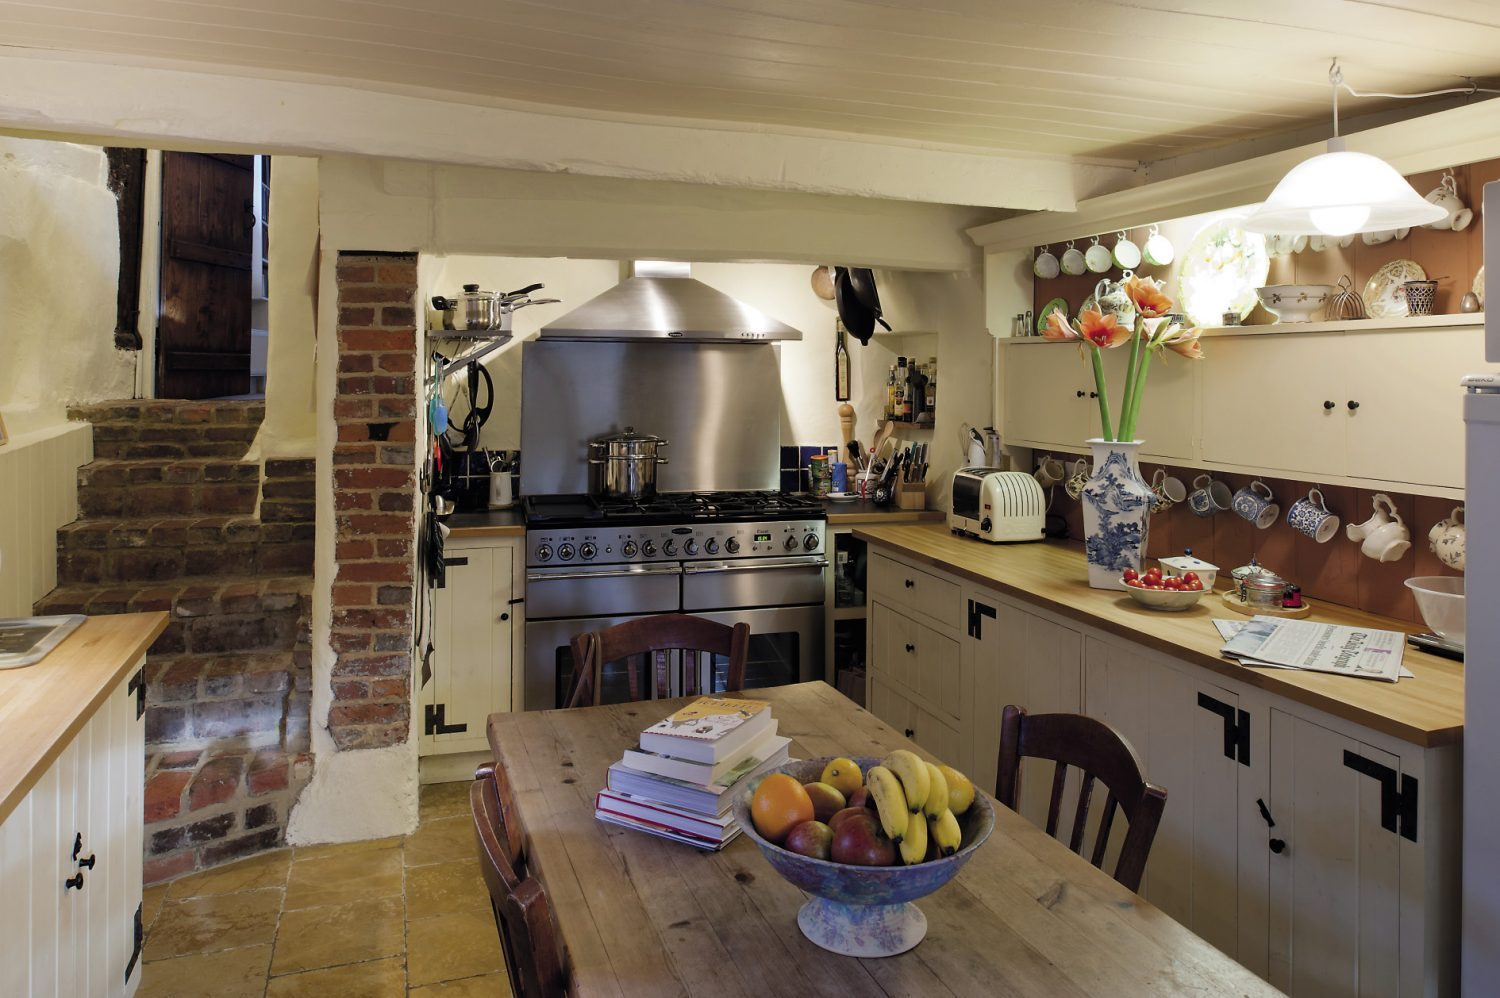 Stone steps lead down from the dining room into the kitchen, which was once a scullery. It has been updated with a huge stainless steel range, but has kept its old country charm, with a polished stone floor and scrubbed pine table